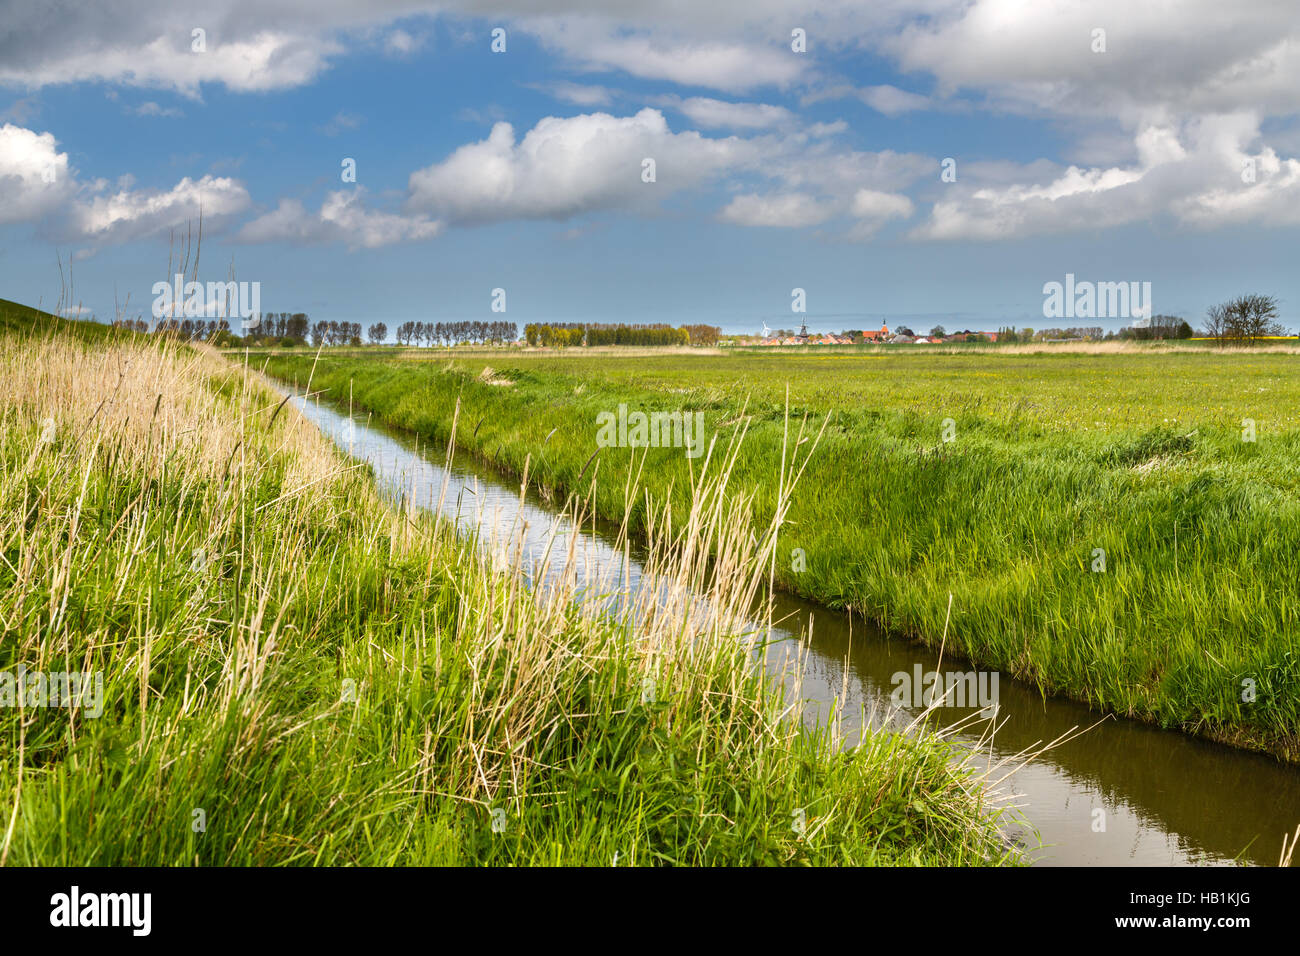 Moats in biotope - Stock Image